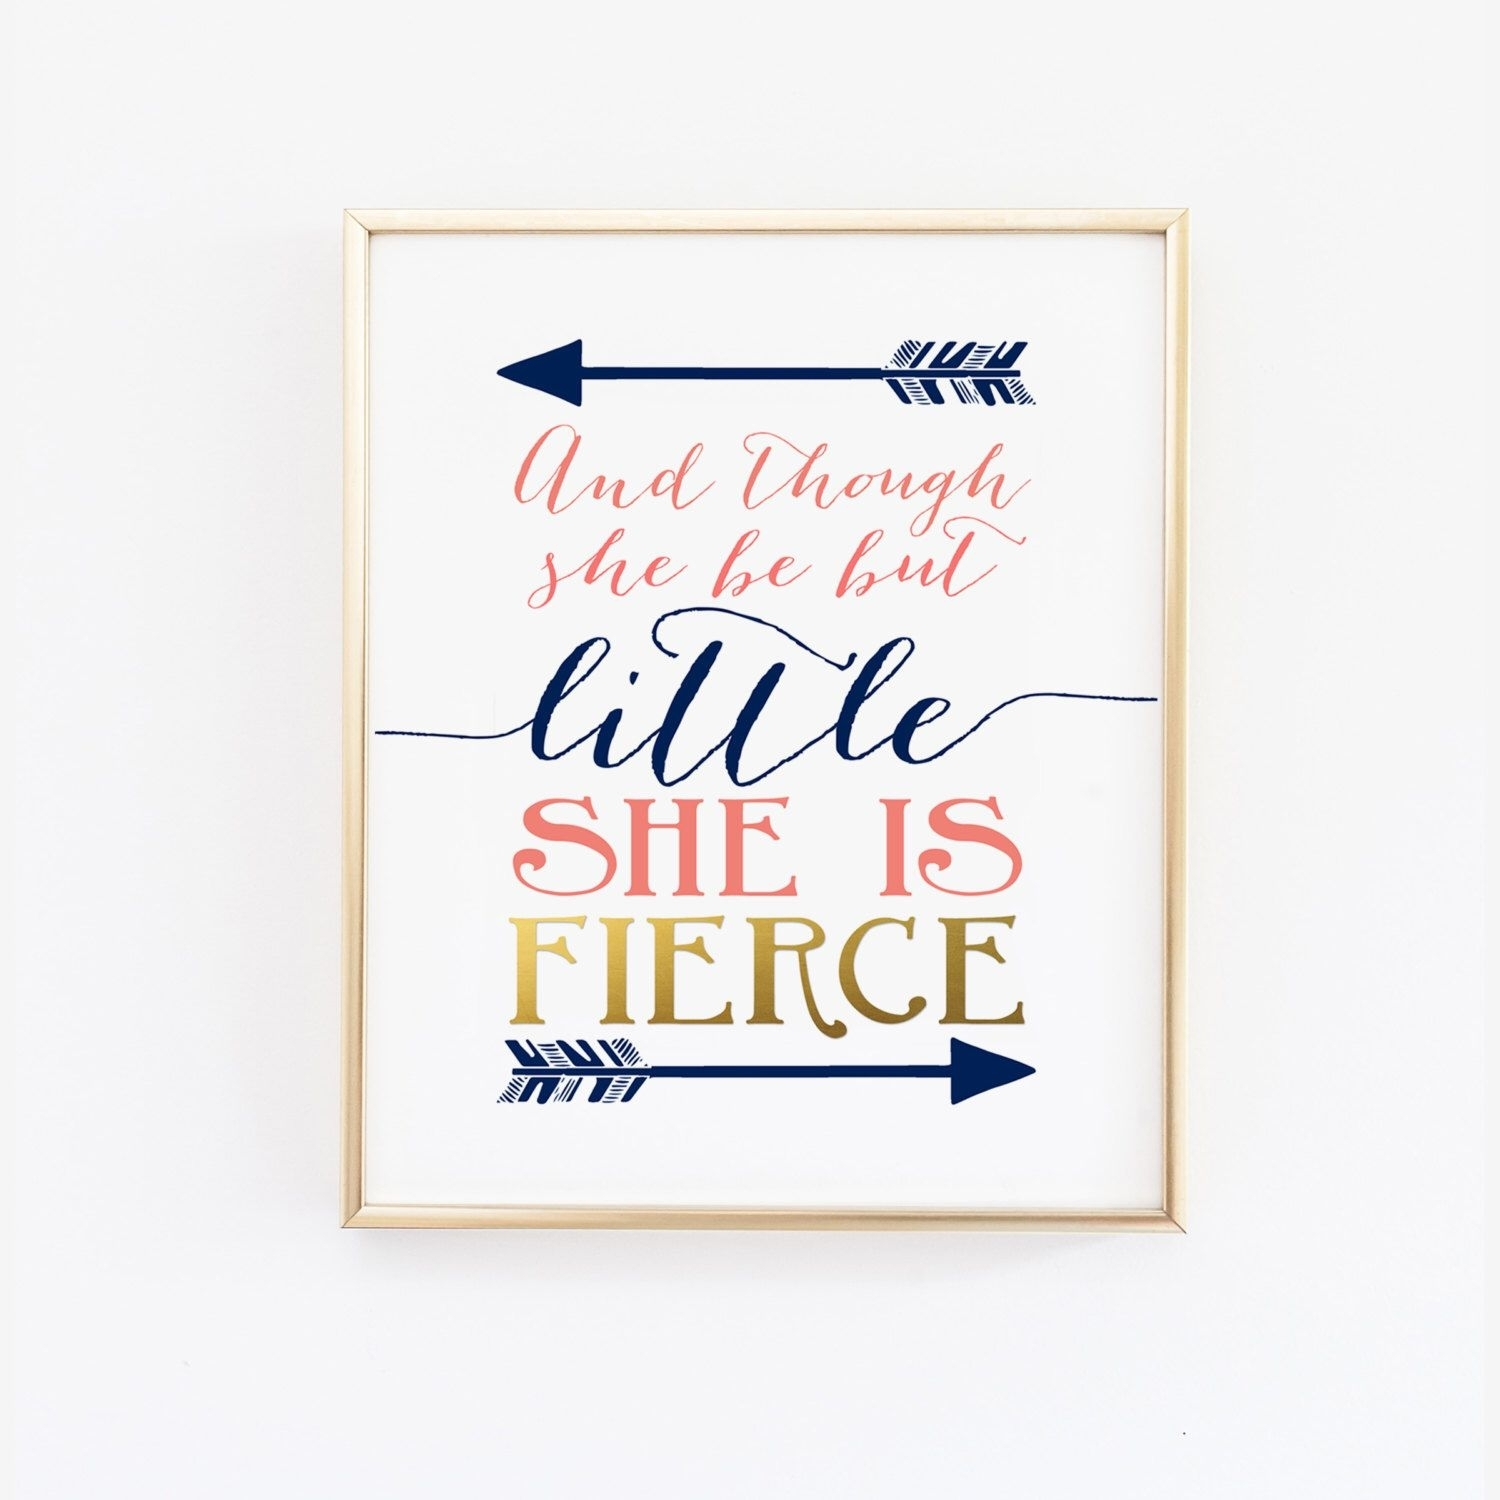 Printable Wall Art - And Though She Be But Little She Is Fierce intended for Best and Newest Though She Be But Little She Is Fierce Wall Art